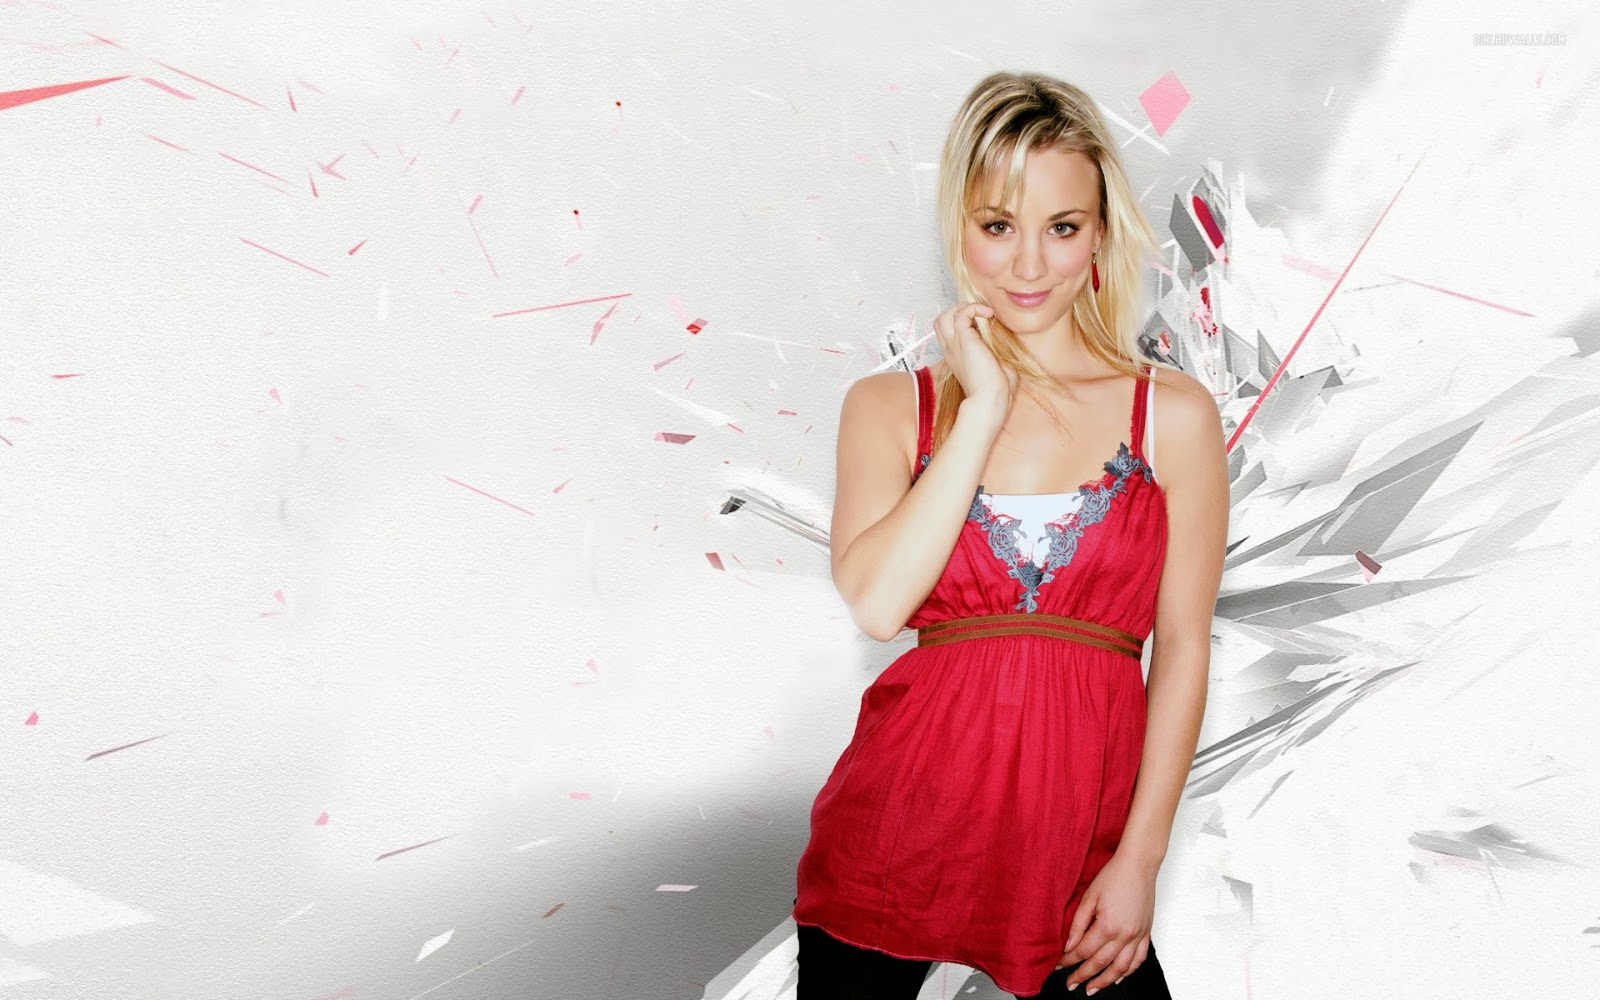 Kaley Cuoco 720p Background Wallpapers   HD Wallpapers Window Top 1600x1000